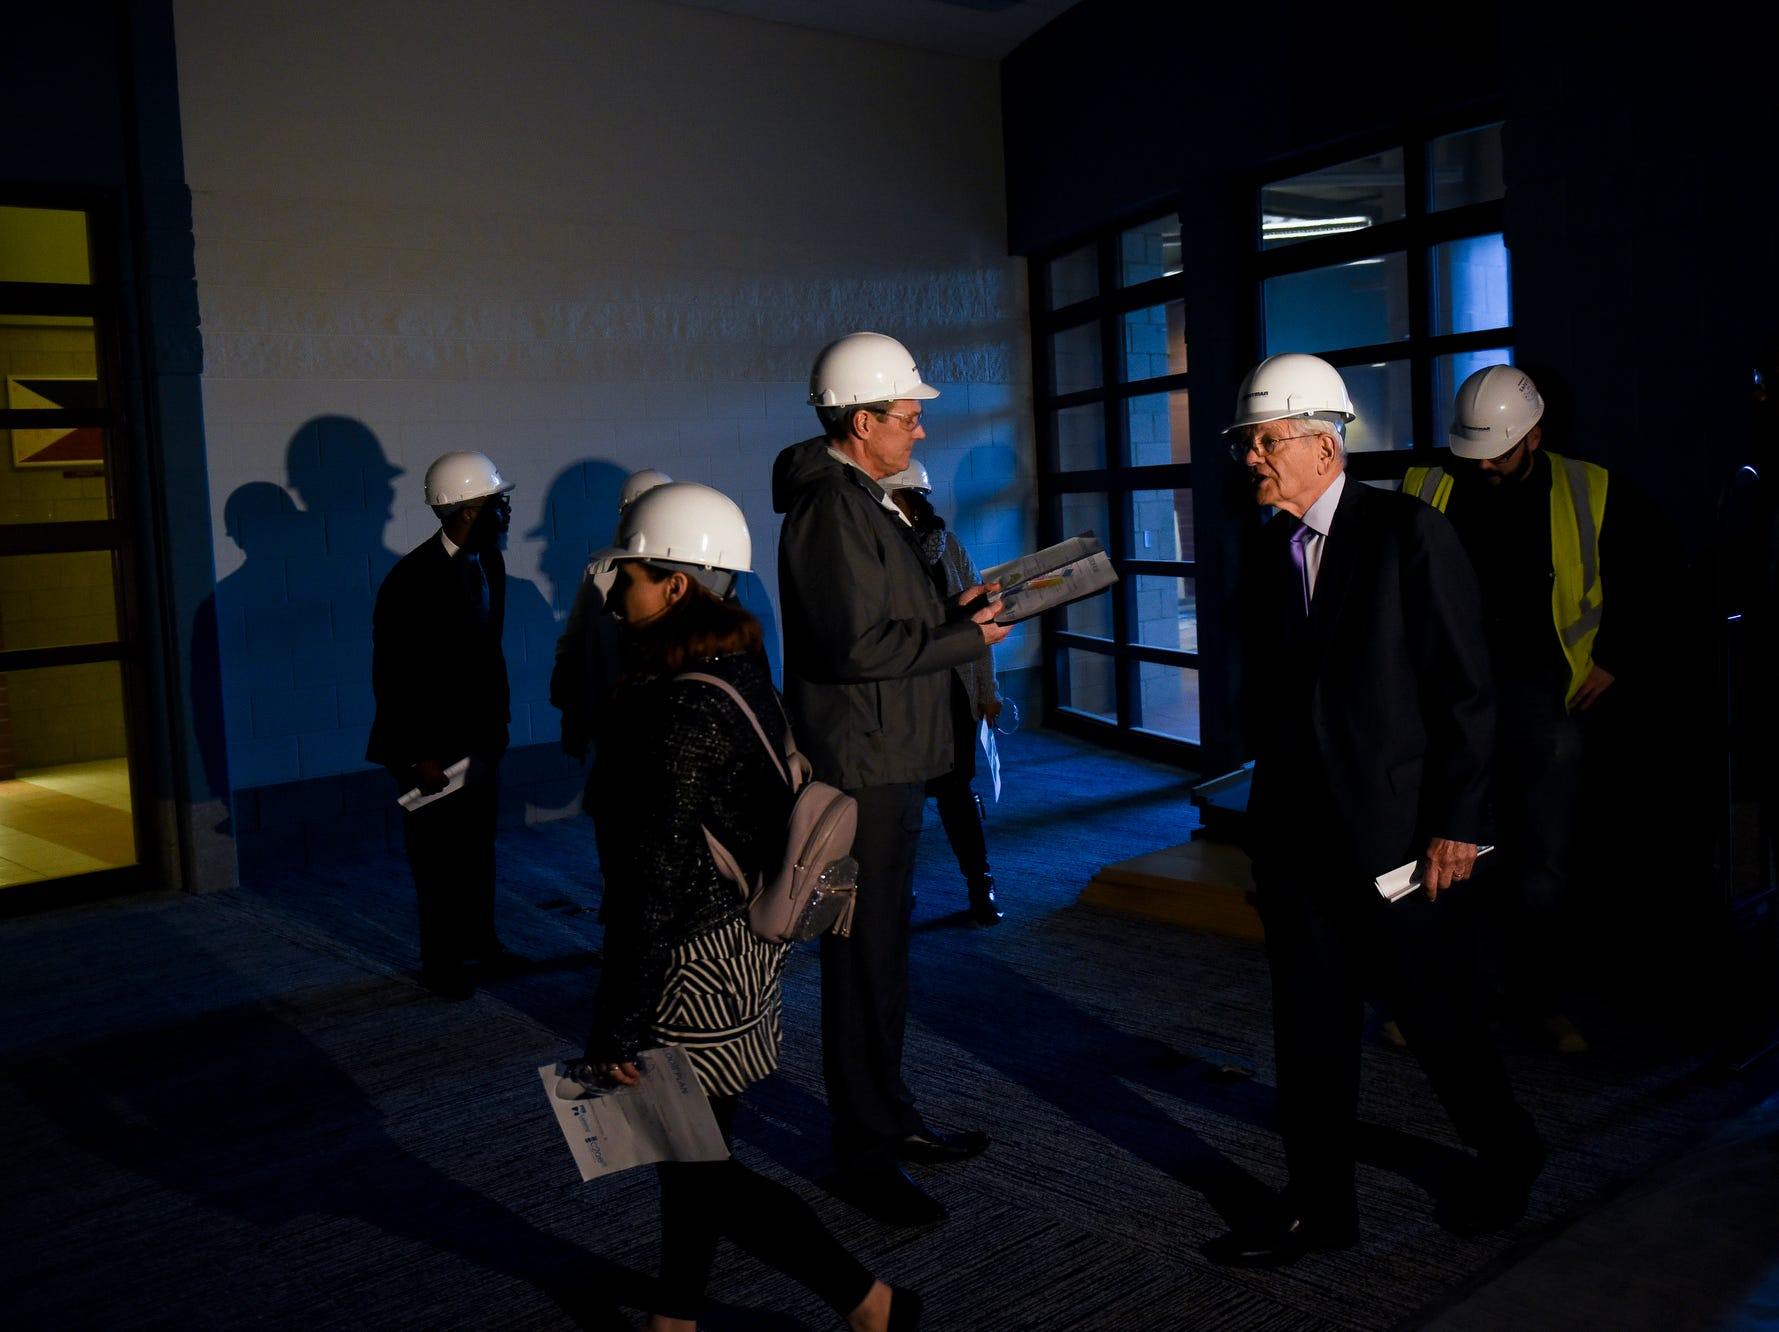 Guests tour the library during a tour of the construction of the new Eastern High School on Thursday, March 14, 2019, in Lansing. The project is being funded by the district's successful Pathway Promise millage, which was passed by voters in 2016. The building was formerly Pattengill Academy.